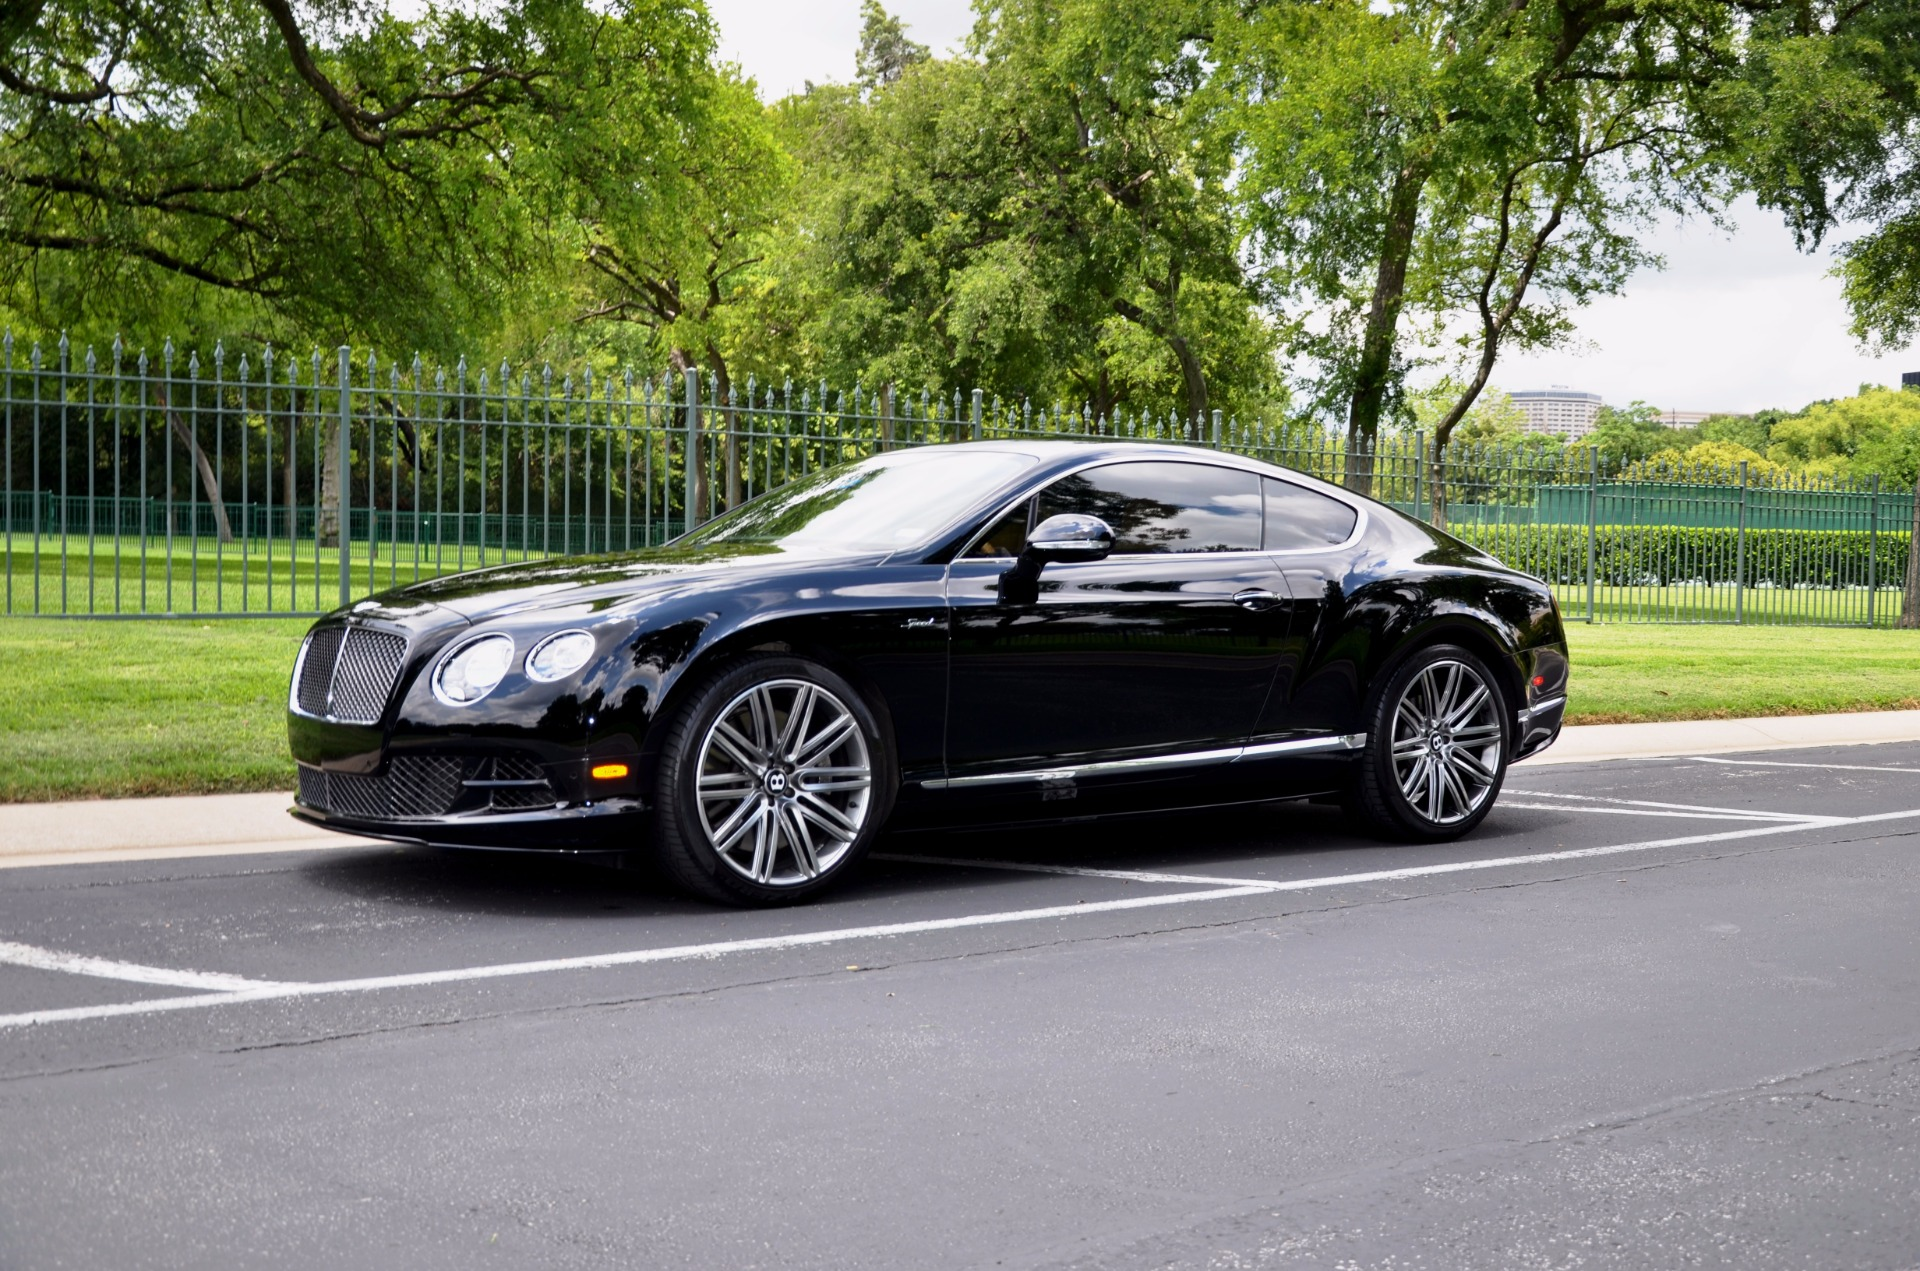 2015 bentley continental gt speed stock 15gtspeed for sale near dallas tx tx bentley dealer. Black Bedroom Furniture Sets. Home Design Ideas